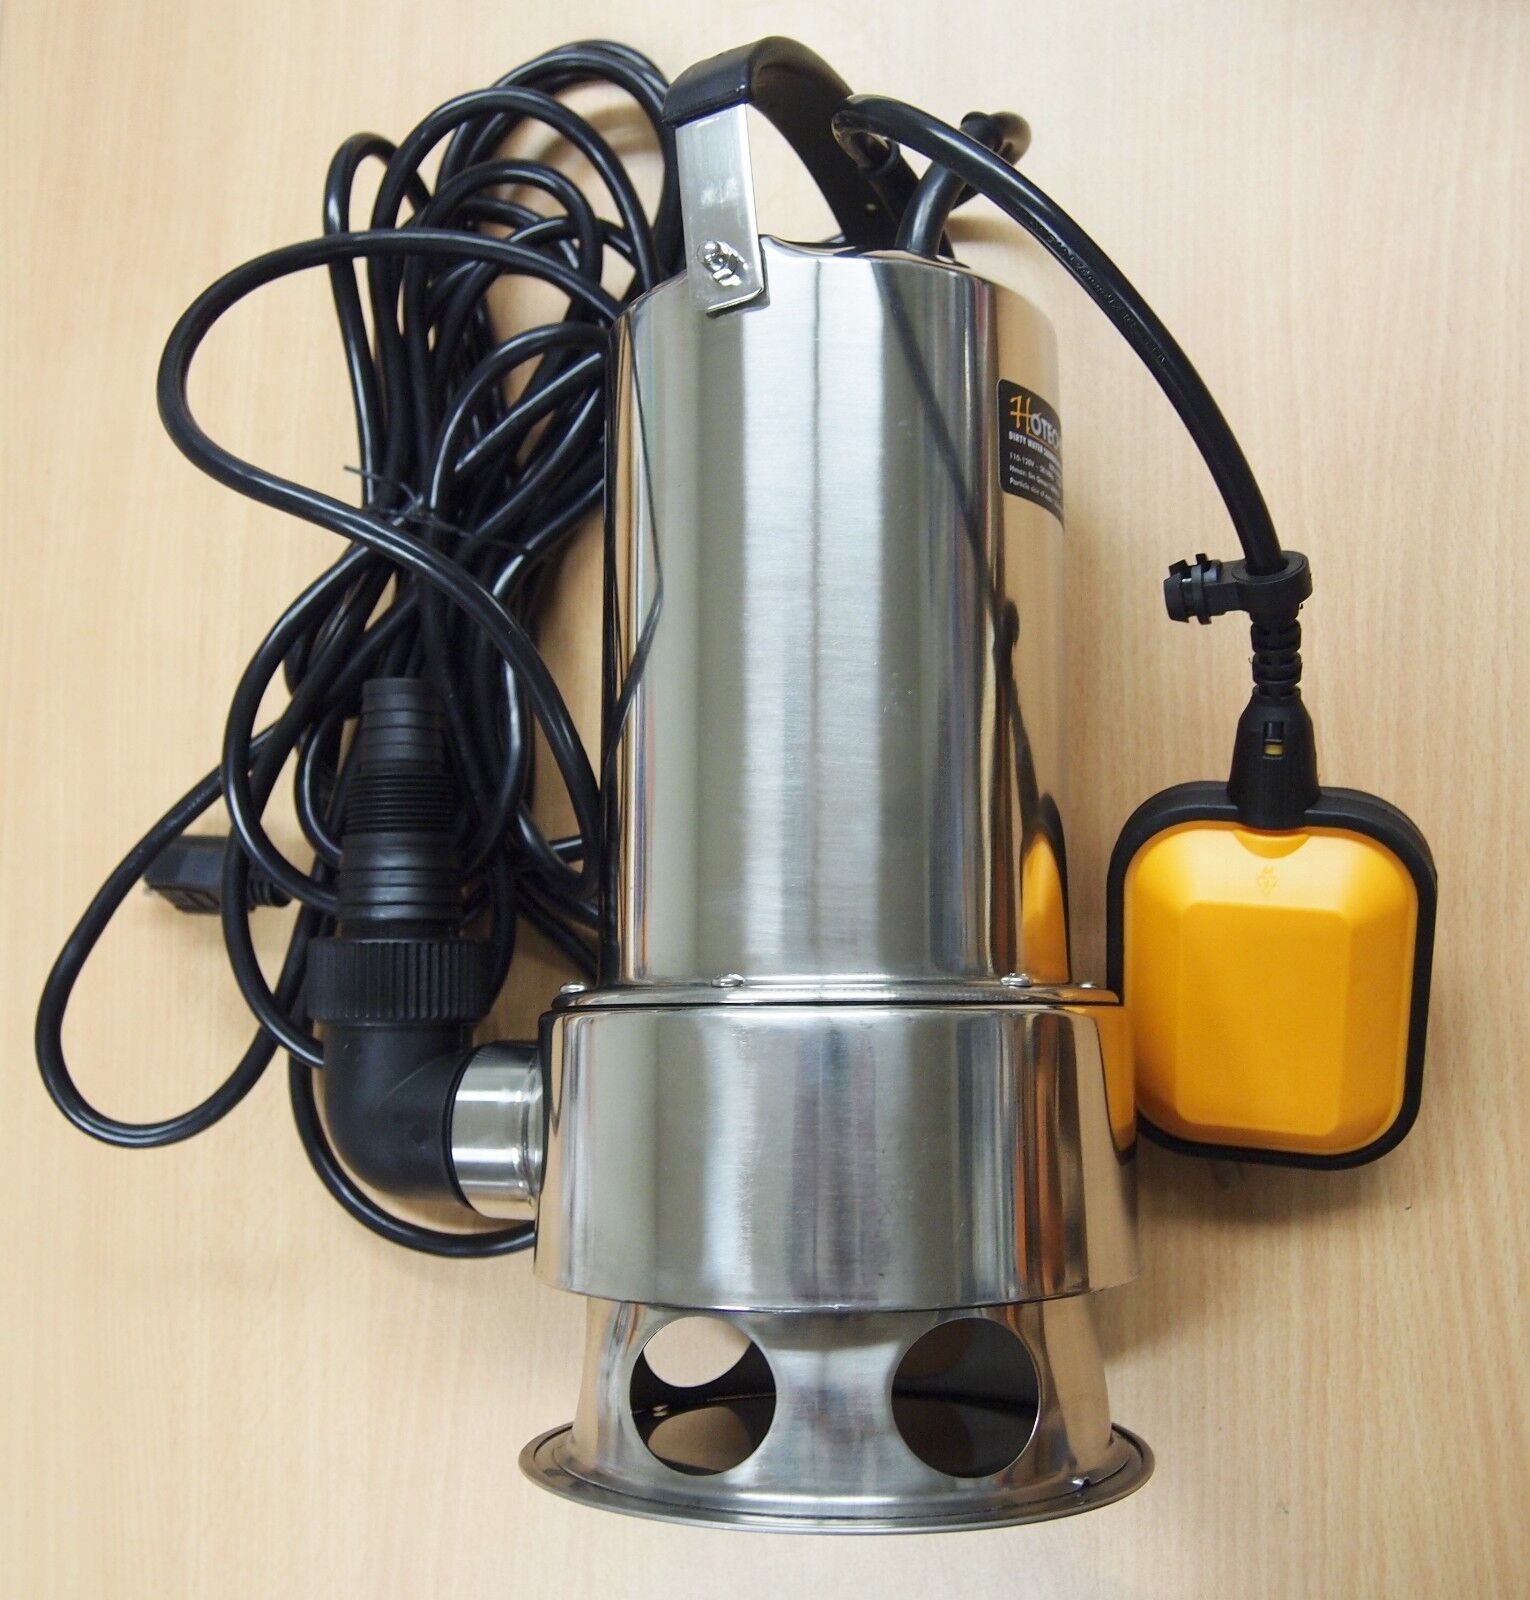 Submersible Water Pump Stainless Steel 1HP 13000 L/H Trash C